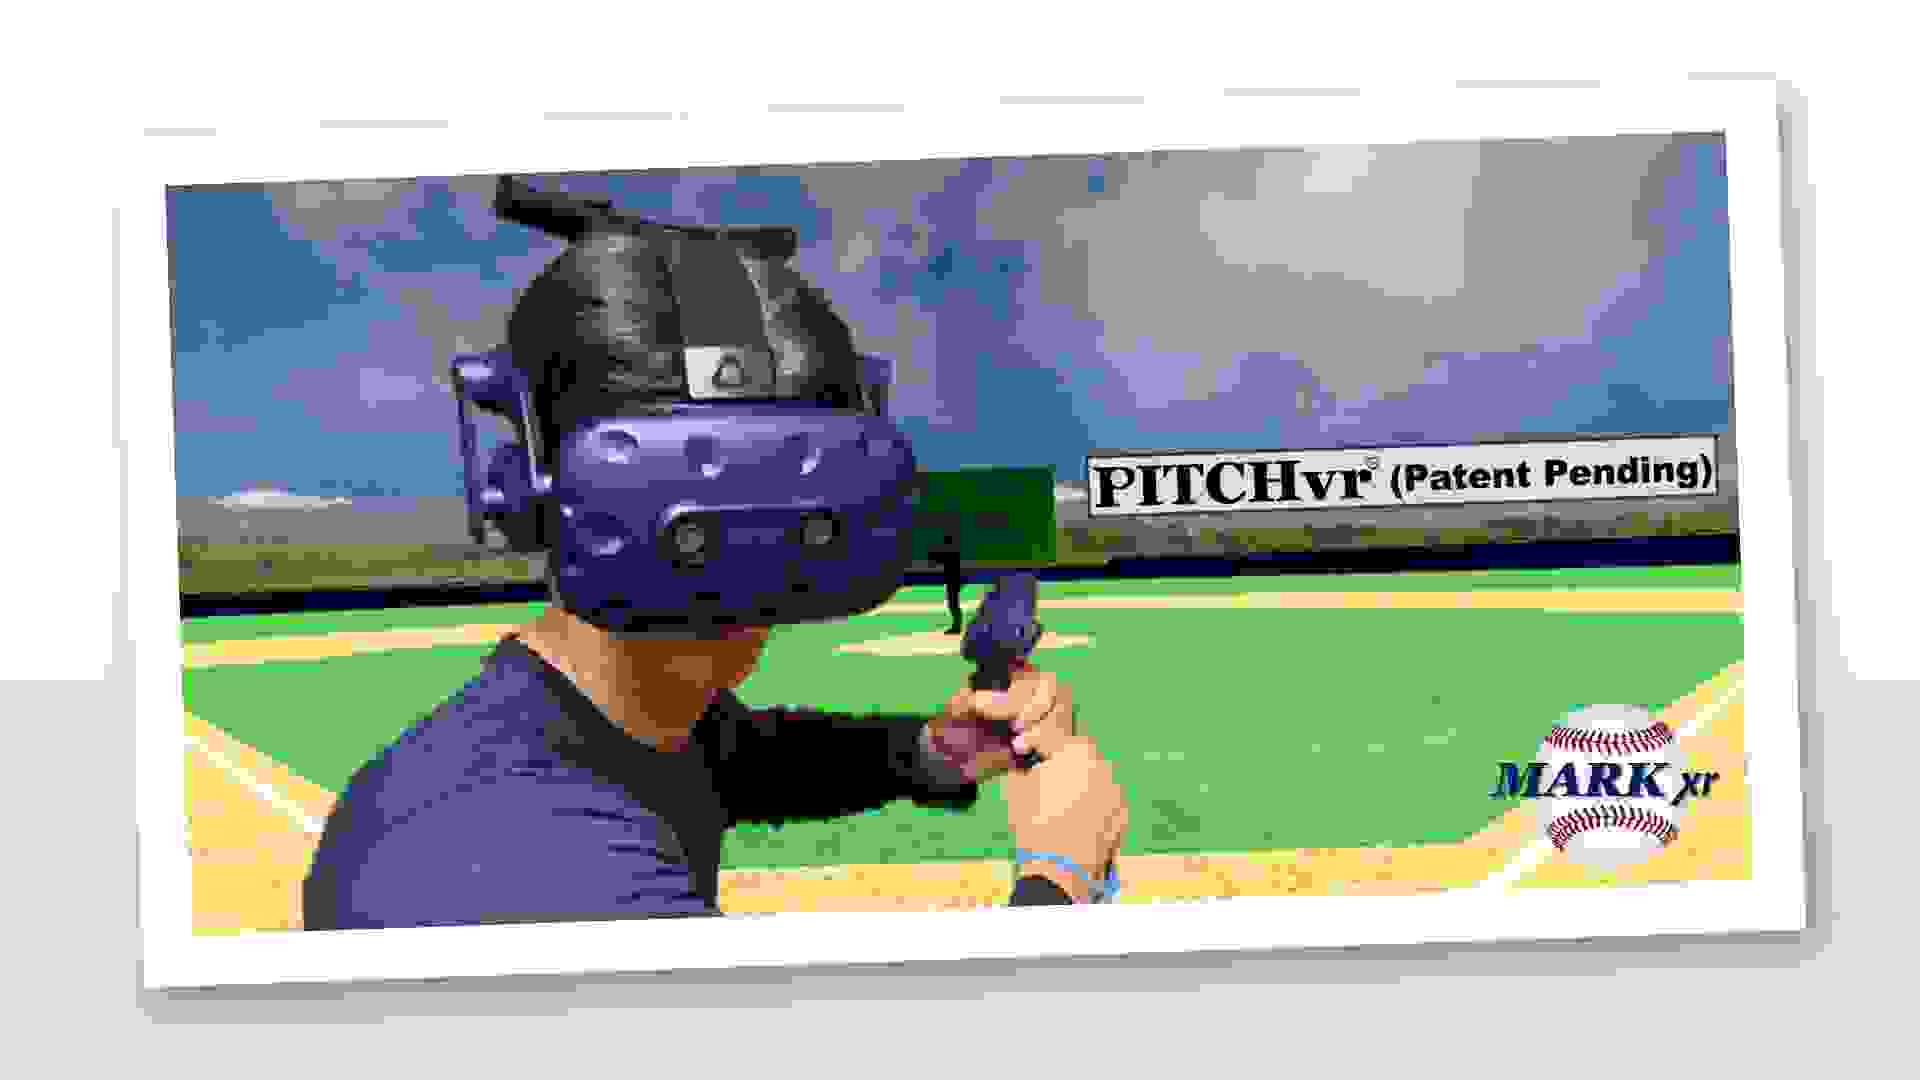 The HTC Vive Pro Eye system is used to measure the user's ability to track a pitch.